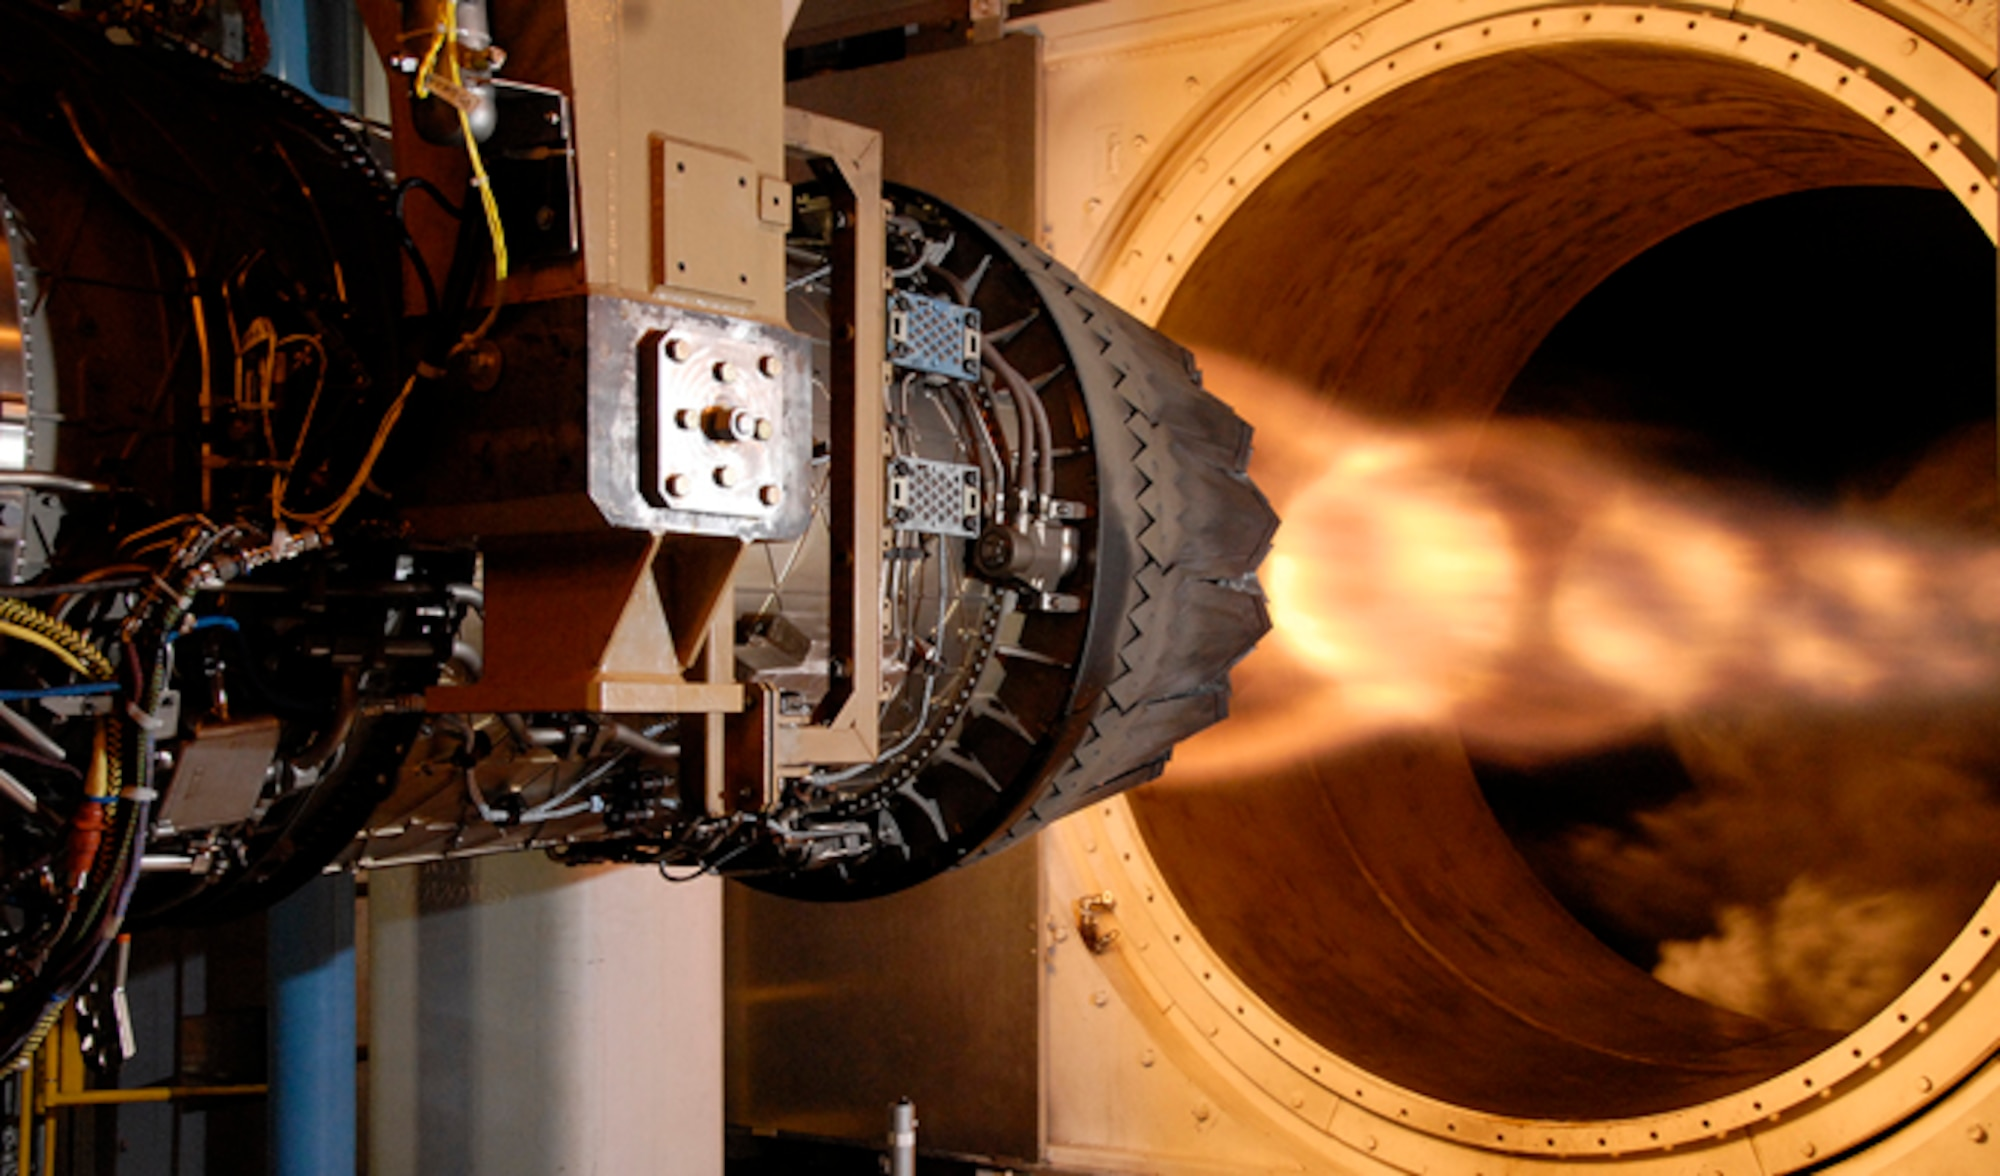 A Pratt & Whitney F135 engine for the Conventional Take-Off and Landing version of the F-35 Lighting II Joint Strike Fighter completed a record-breaking accelerated mission test in the Sea Level 3 (SL-3) test cell at the Arnold Engineering Development Center at Arnold Air Force Base, Tenn. Shown here is a previous test of the F135 in the AEDC SL- 3 test cell. (Courtesy photo/Rick Goodfriend)